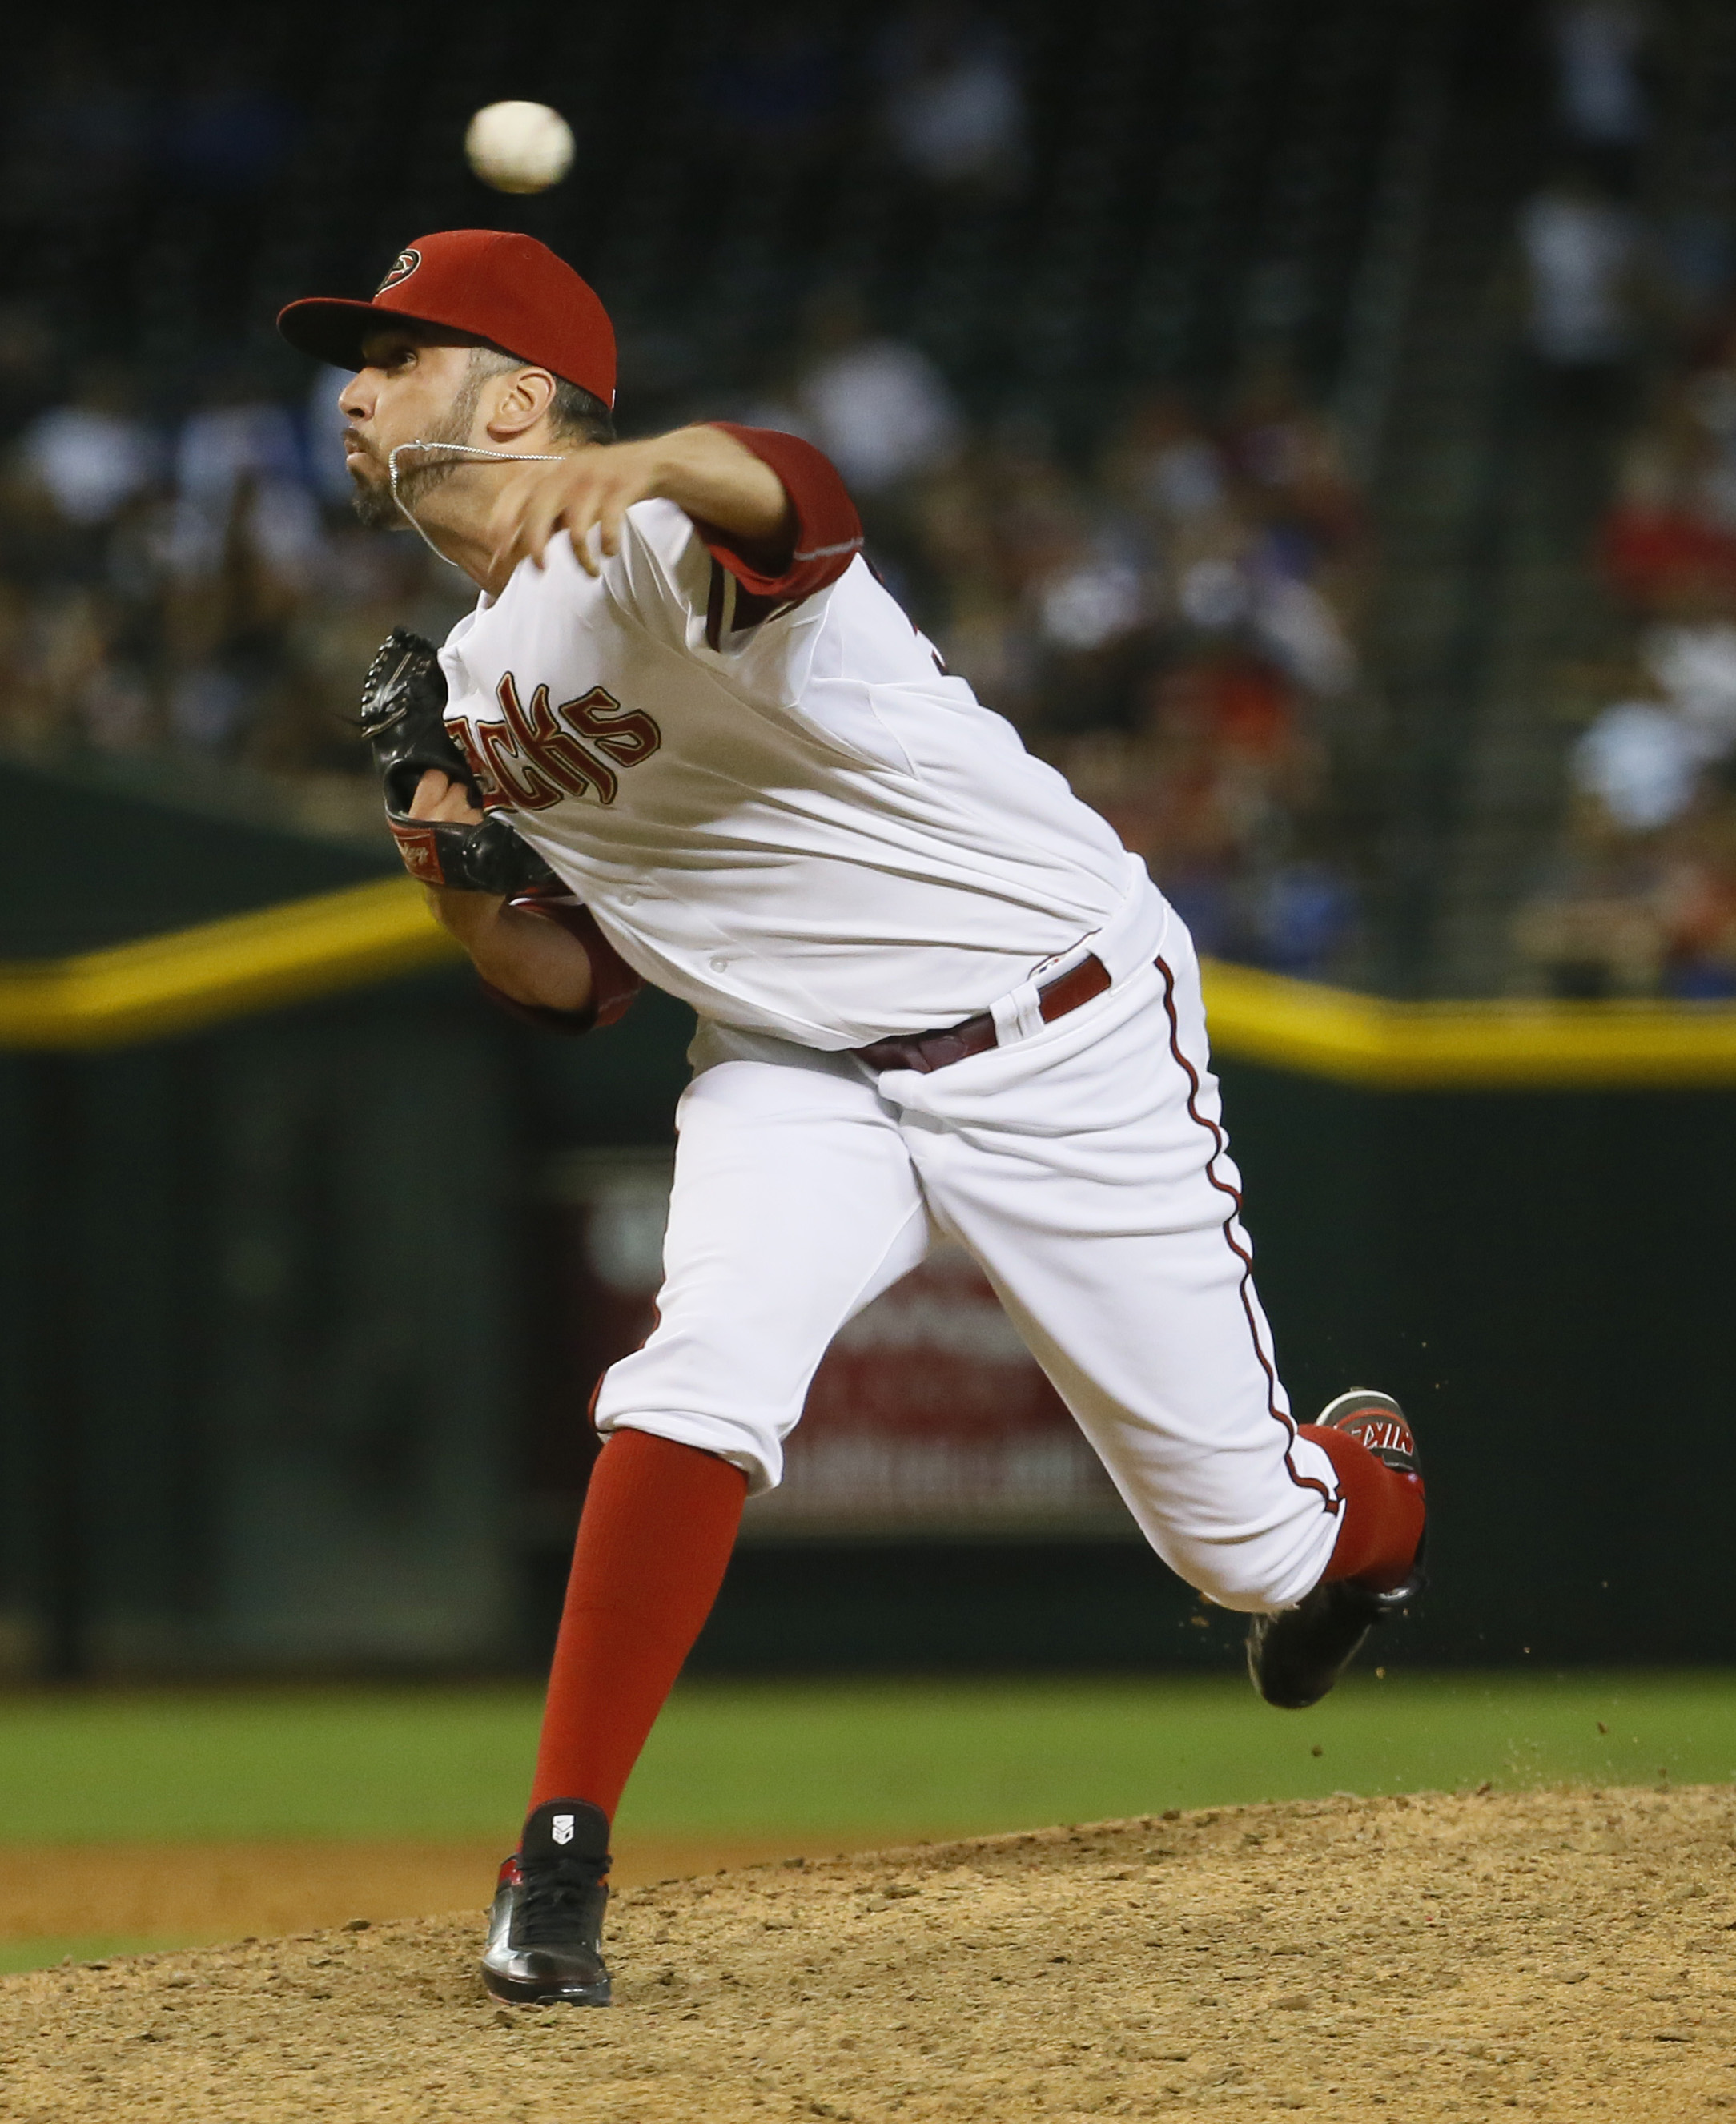 FILE- In this June 30, 2015, file photo, Arizona Diamondbacks relief pitcher Oliver Perez throws against the Los Angeles Dodgers during the sixth inning of a baseball game in Phoenix. The Houston Astros added help in the bullpen Friday, Aug. 7, acquiring